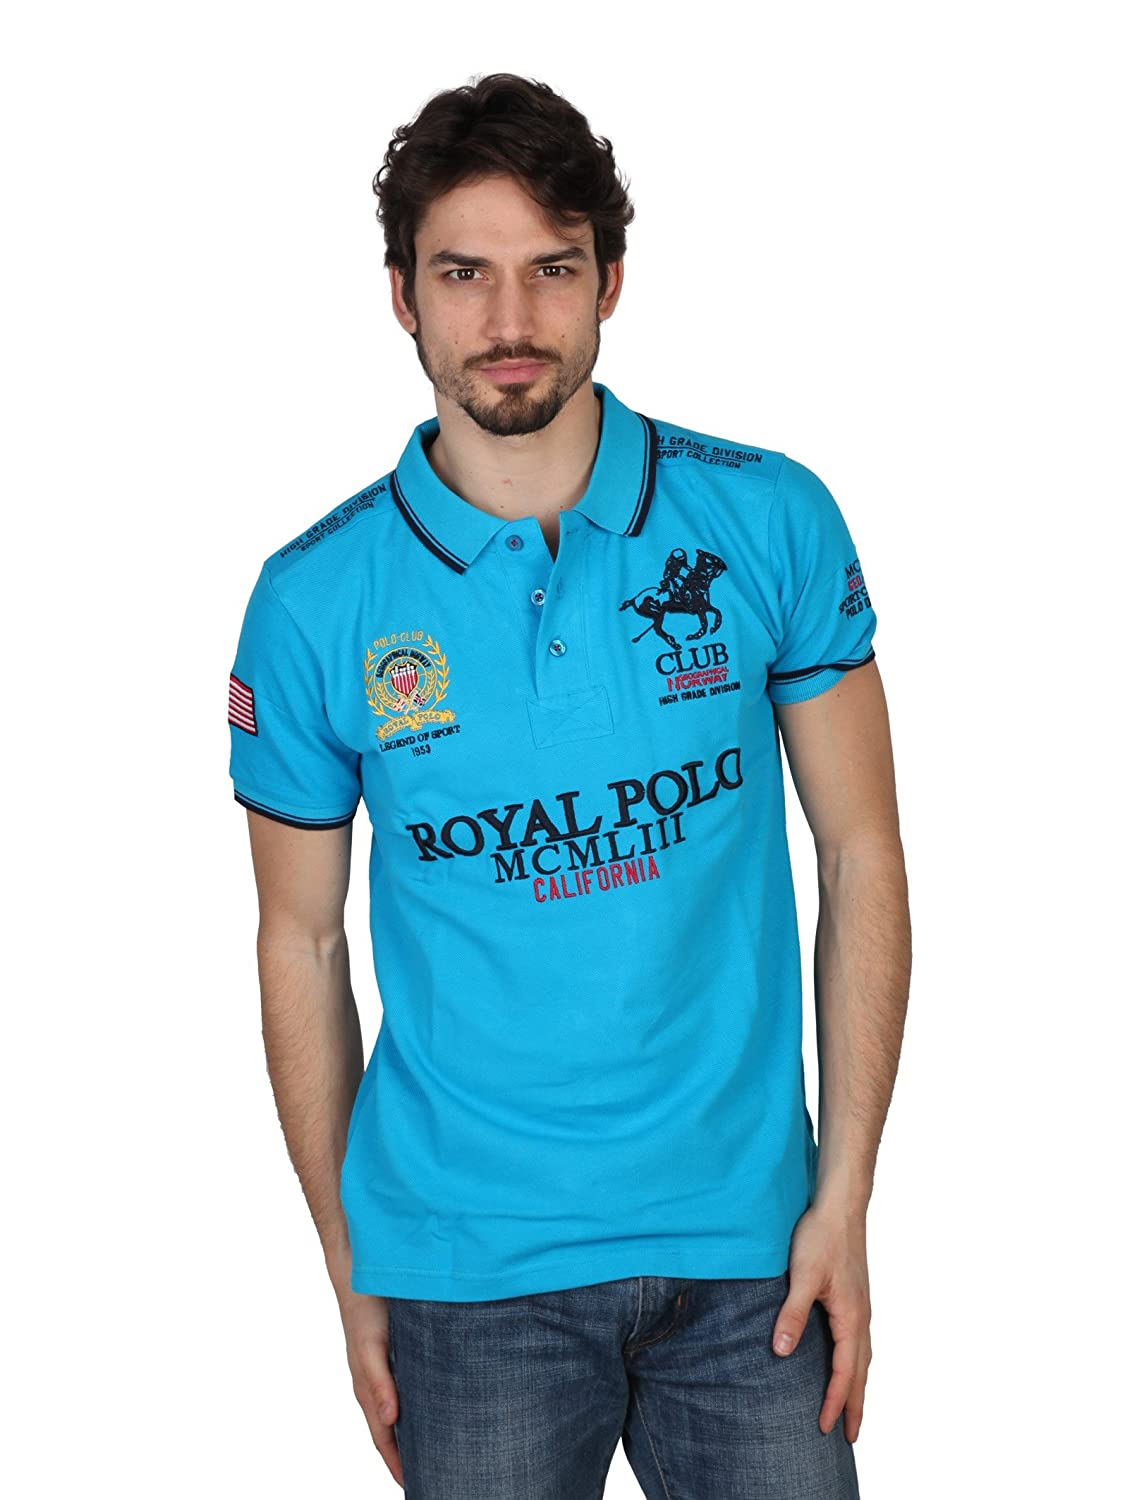 Polo GEOGRAPHICAL NORWAY Homme KriptonB turquoise - -: Amazon.es ...